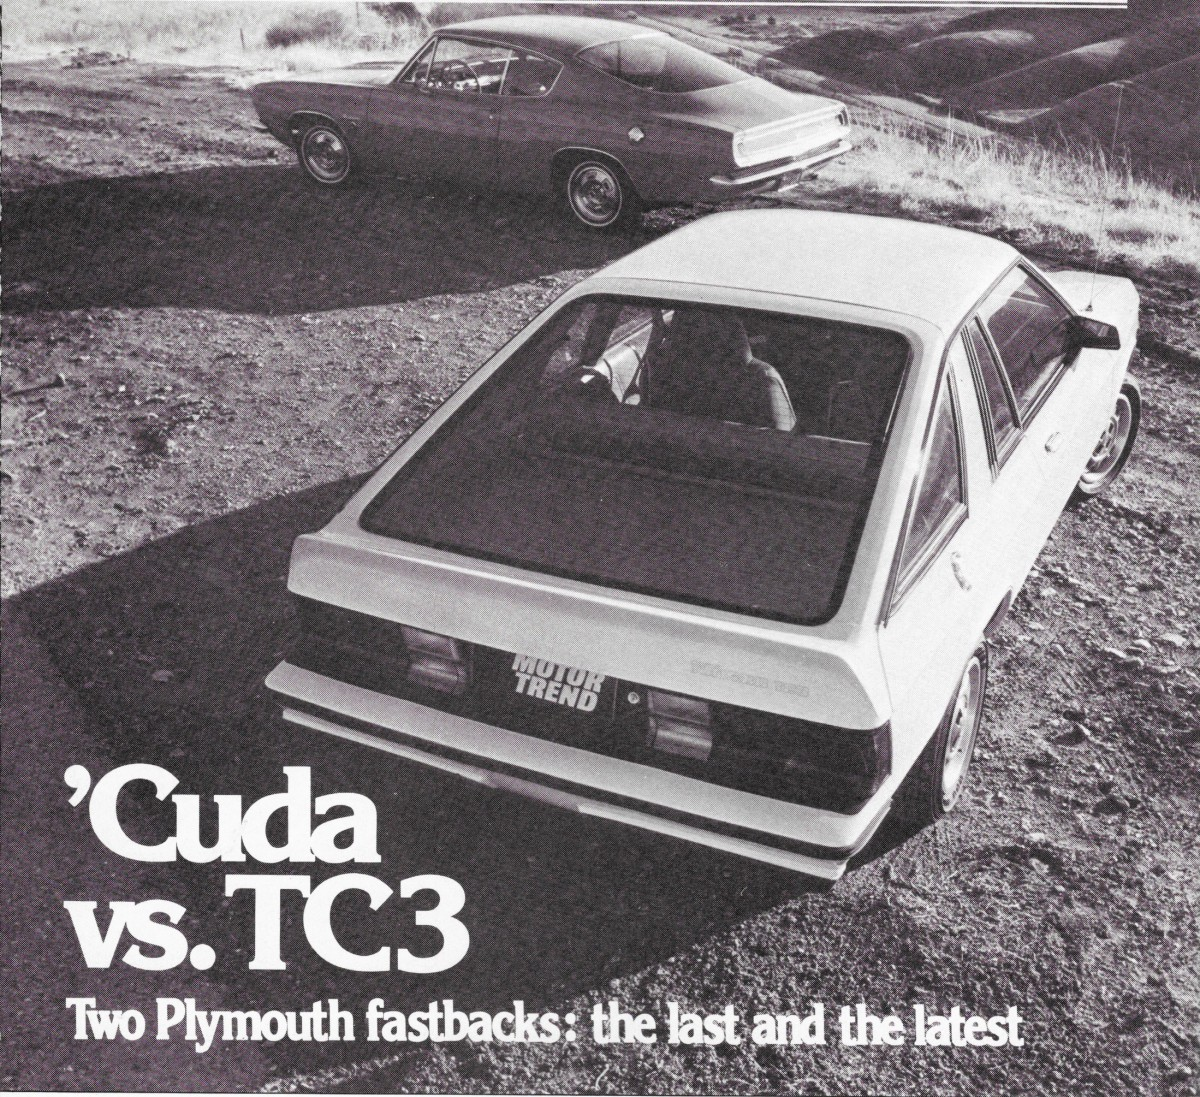 Vintage review 1981 plymouth tc3 versus 1968 barracuda which one was more right for its time